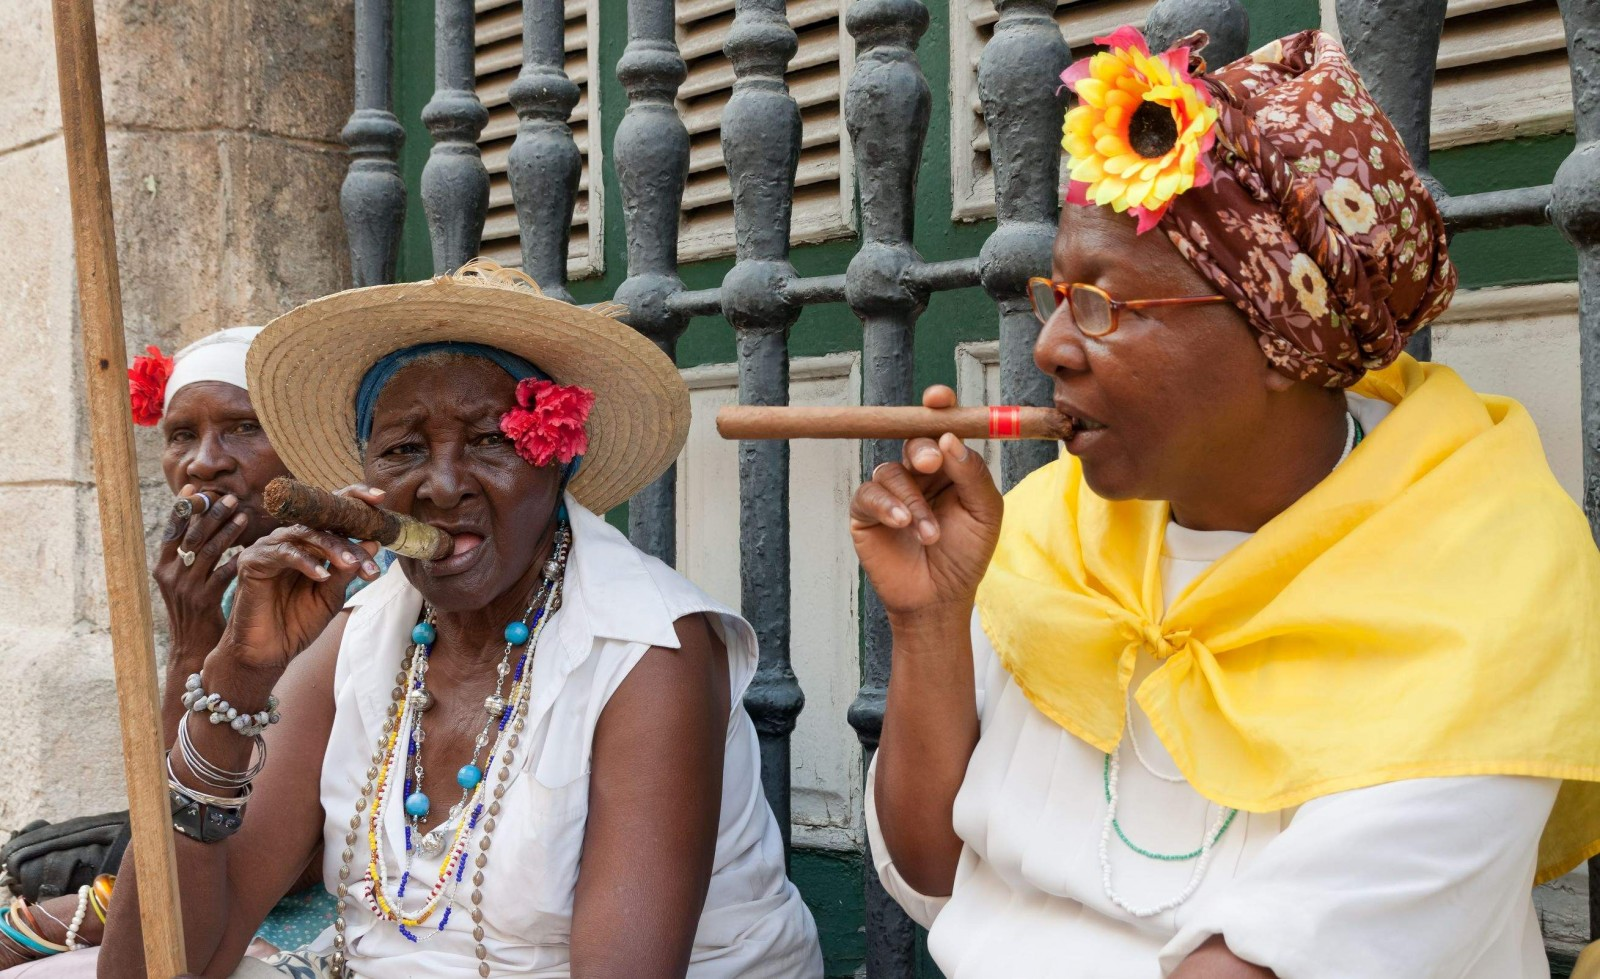 old-ladies-with-cigars-in-havana-cuba-1600x979